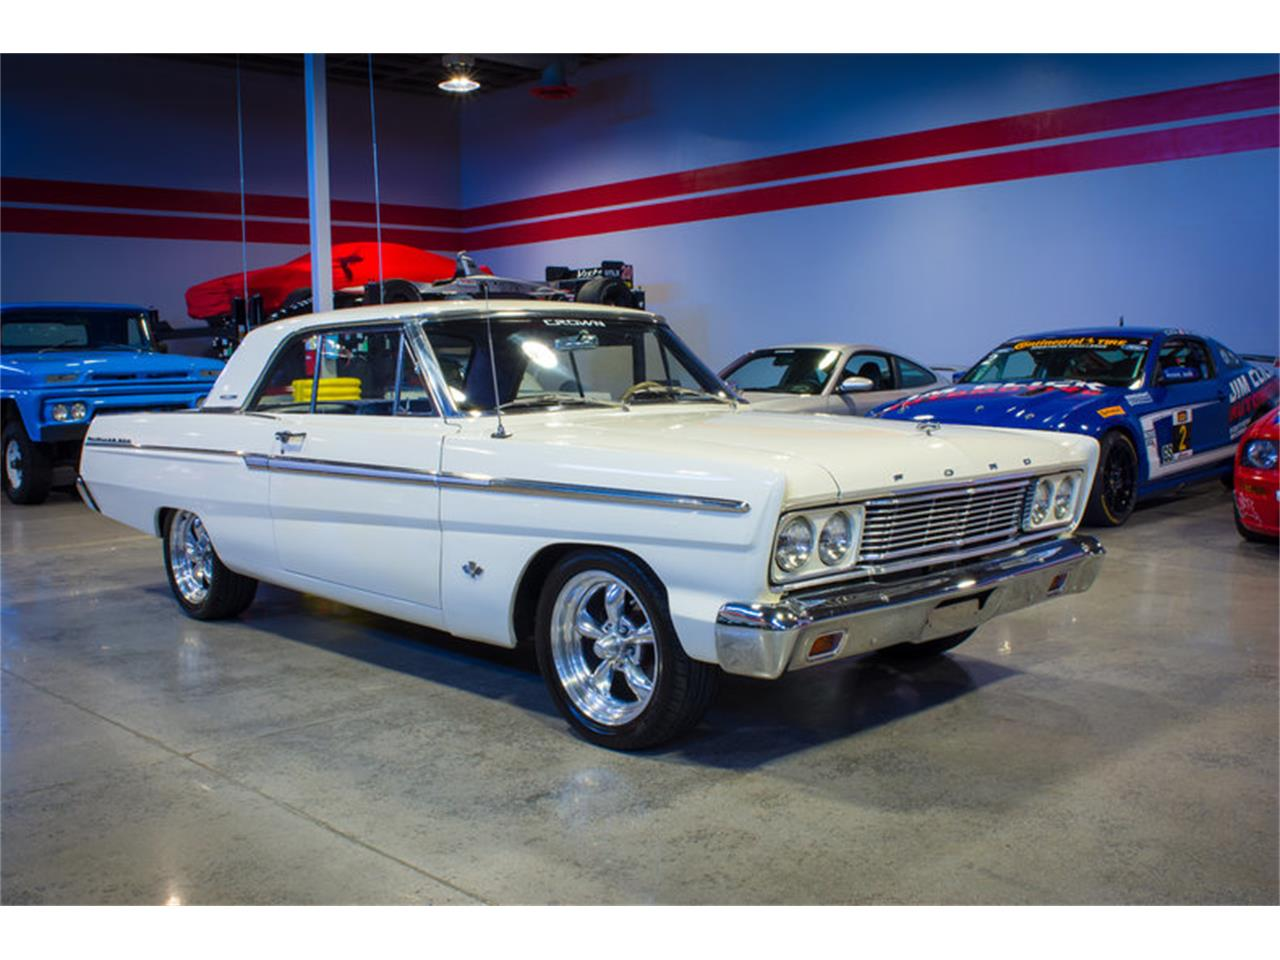 Large picture of 65 fairlane ls00